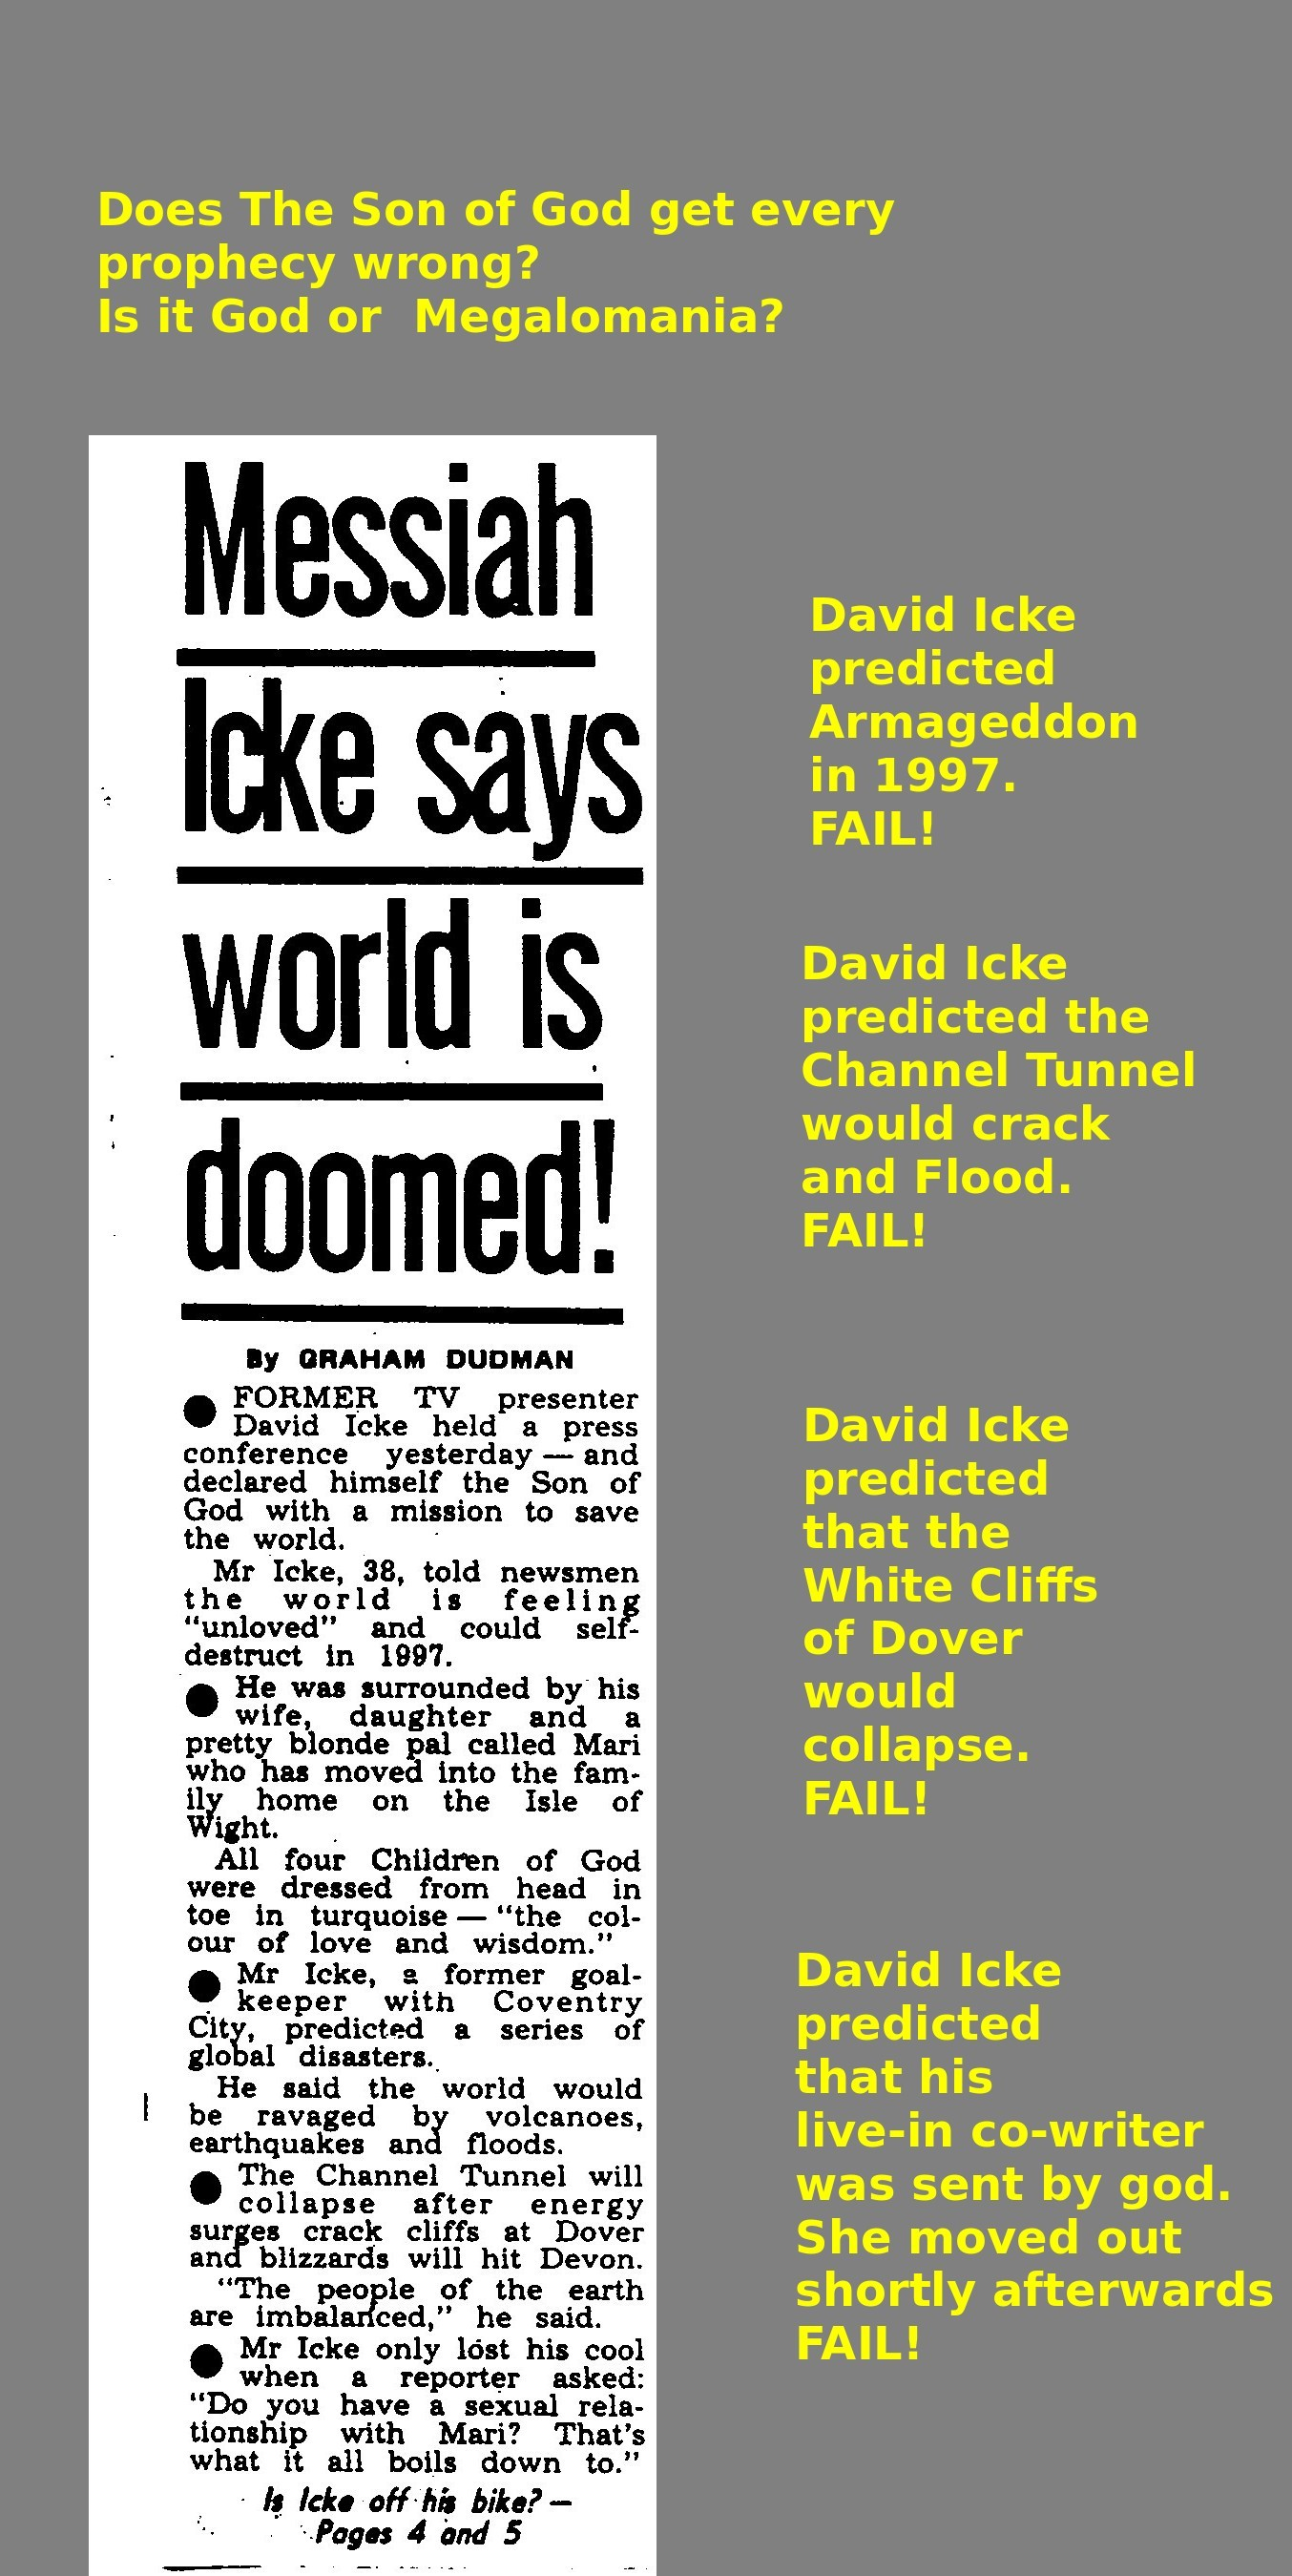 The Rise and Fall of David Icke  How a hopeful New Age